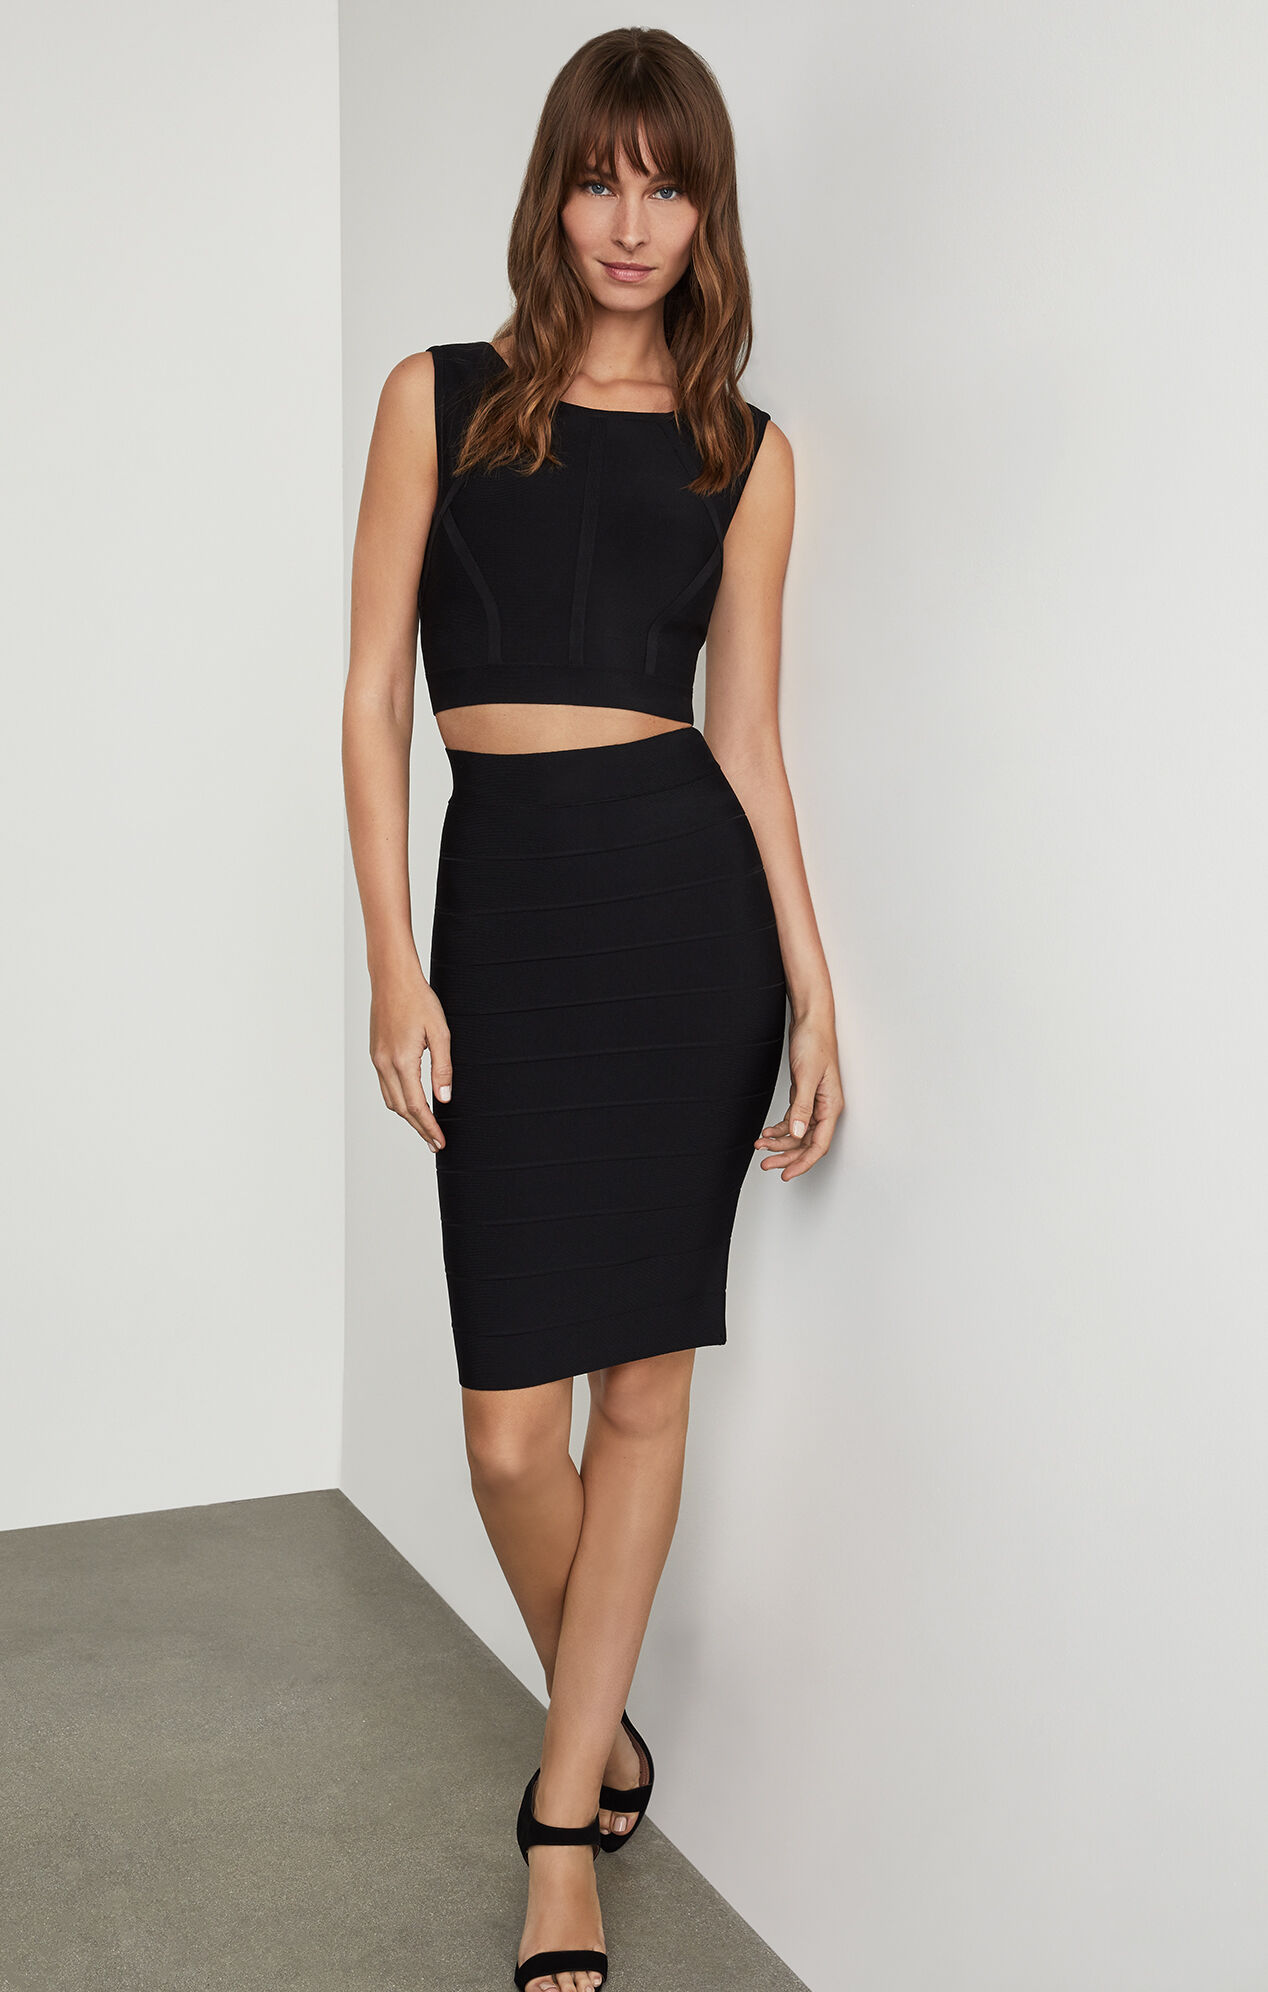 Black Sandals Pencil Skirt